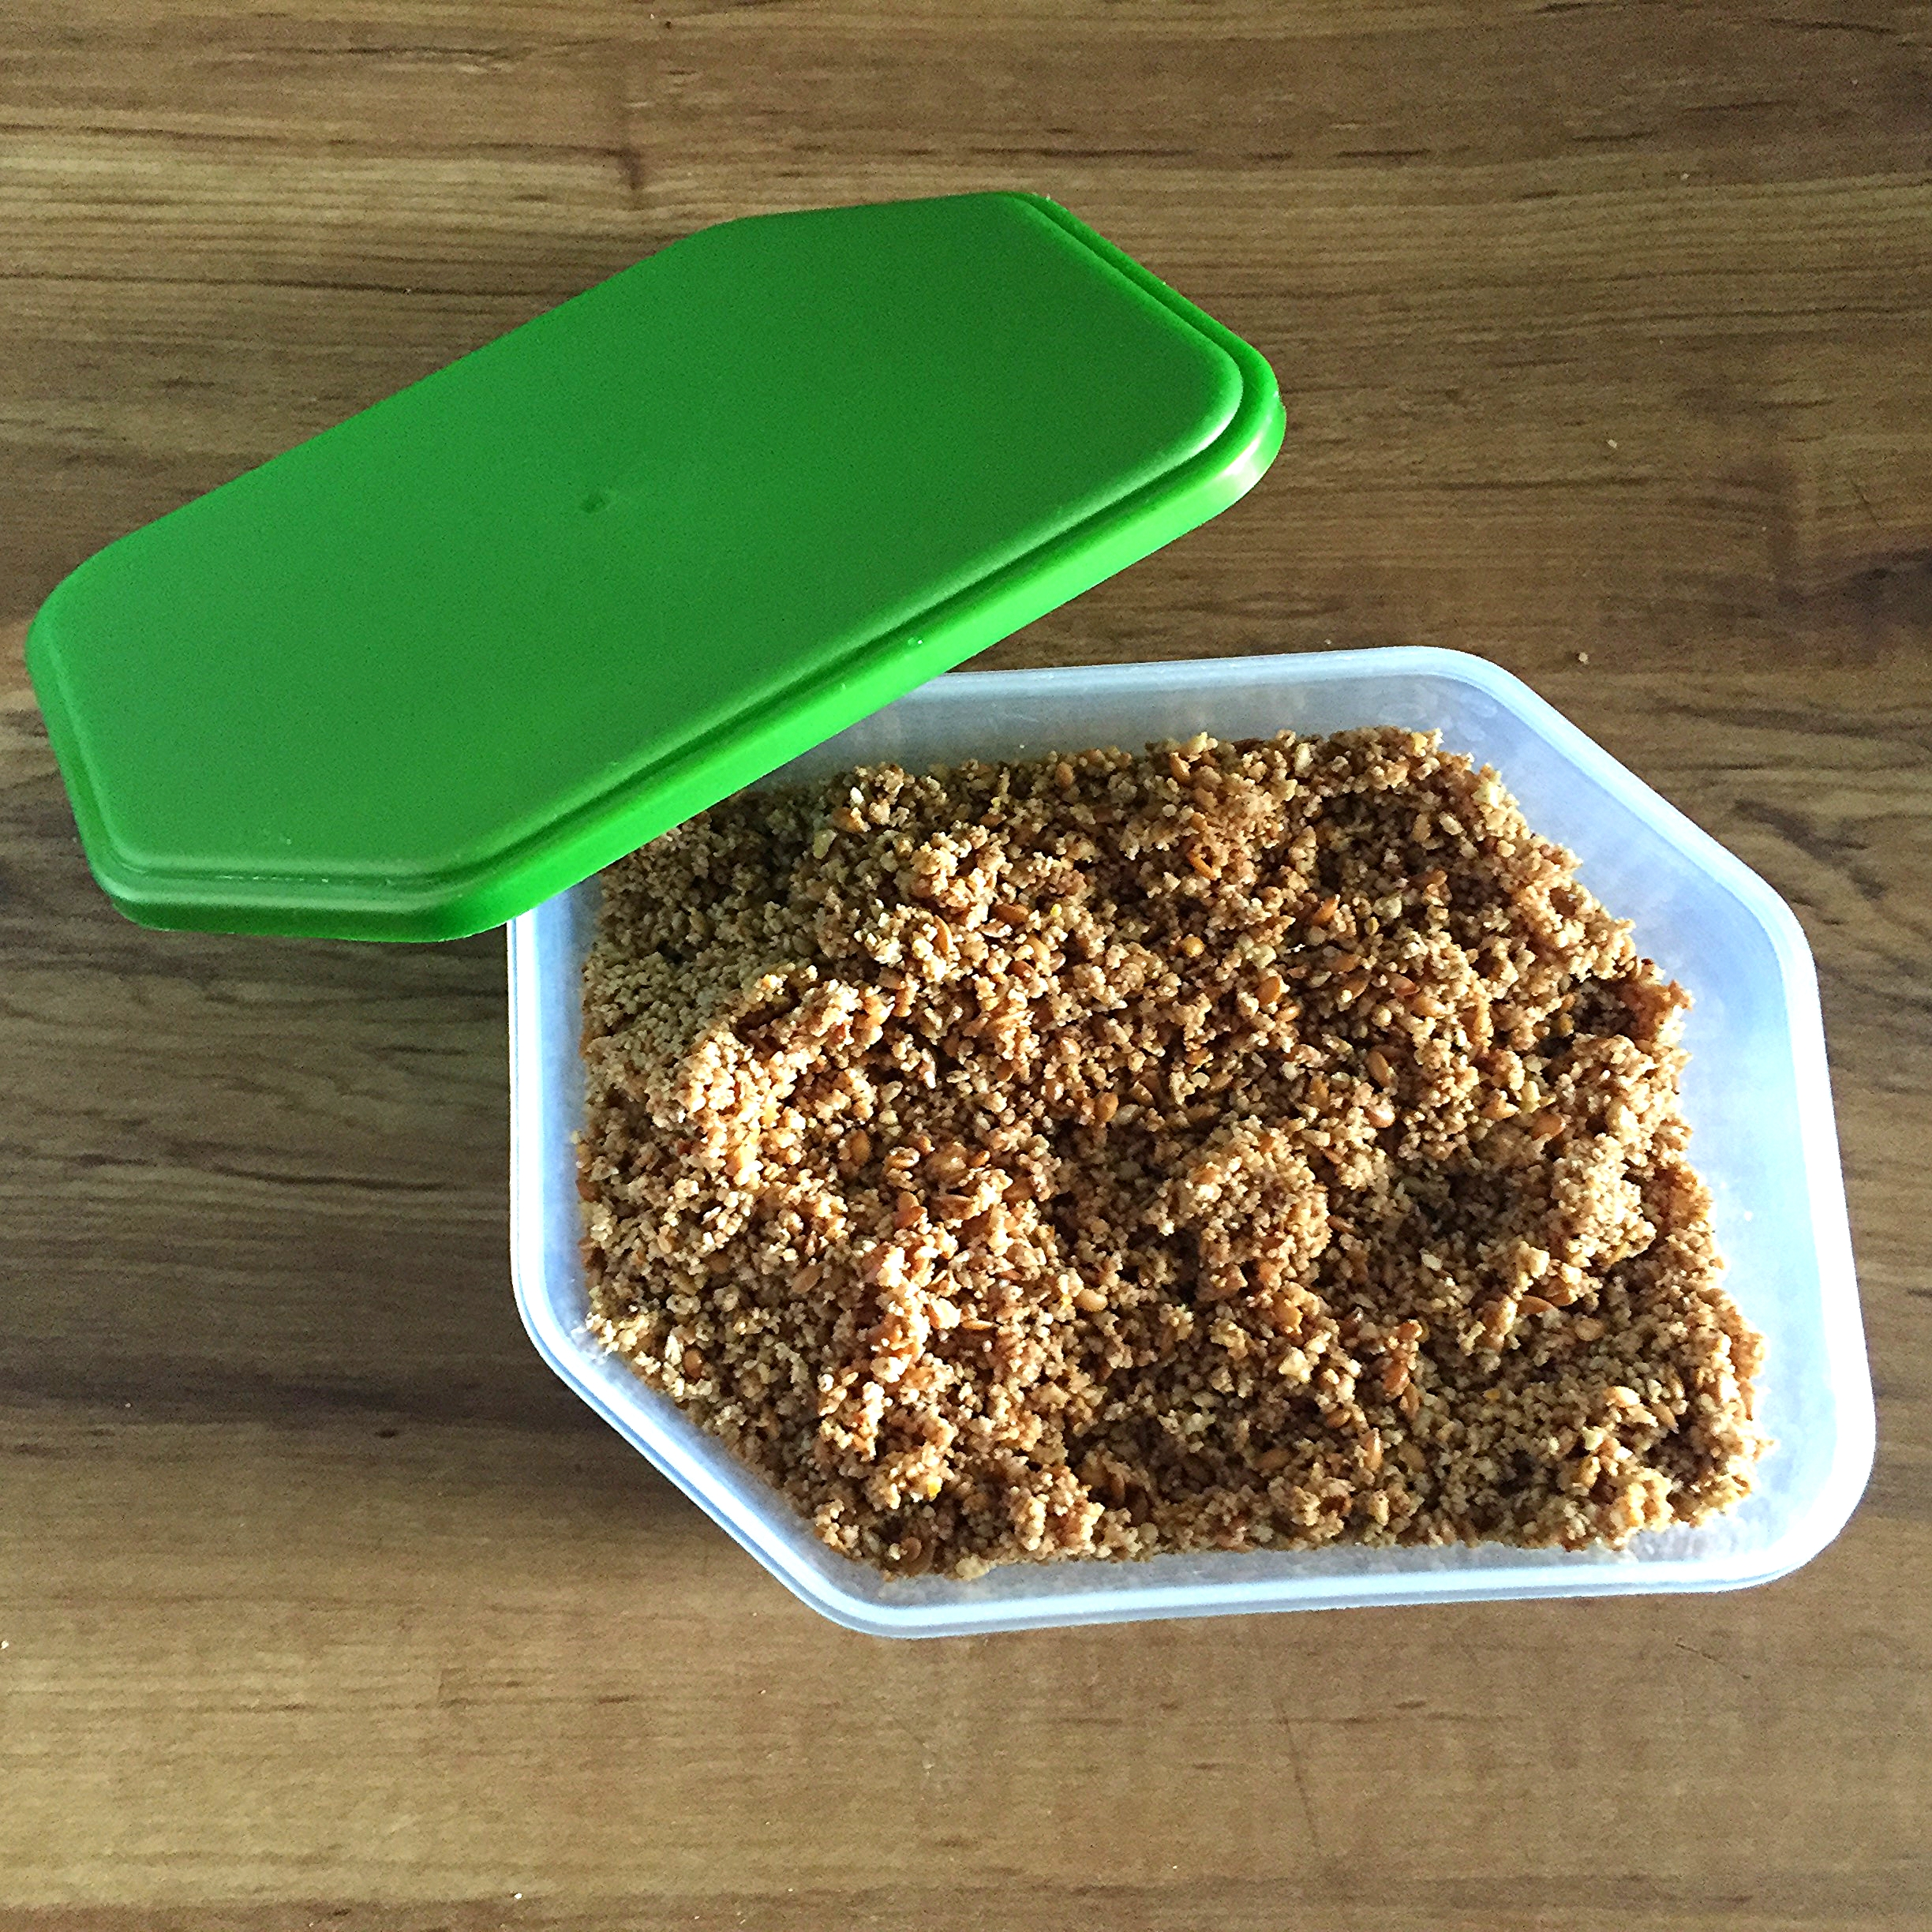 Sunflower-flax seed and almond mix